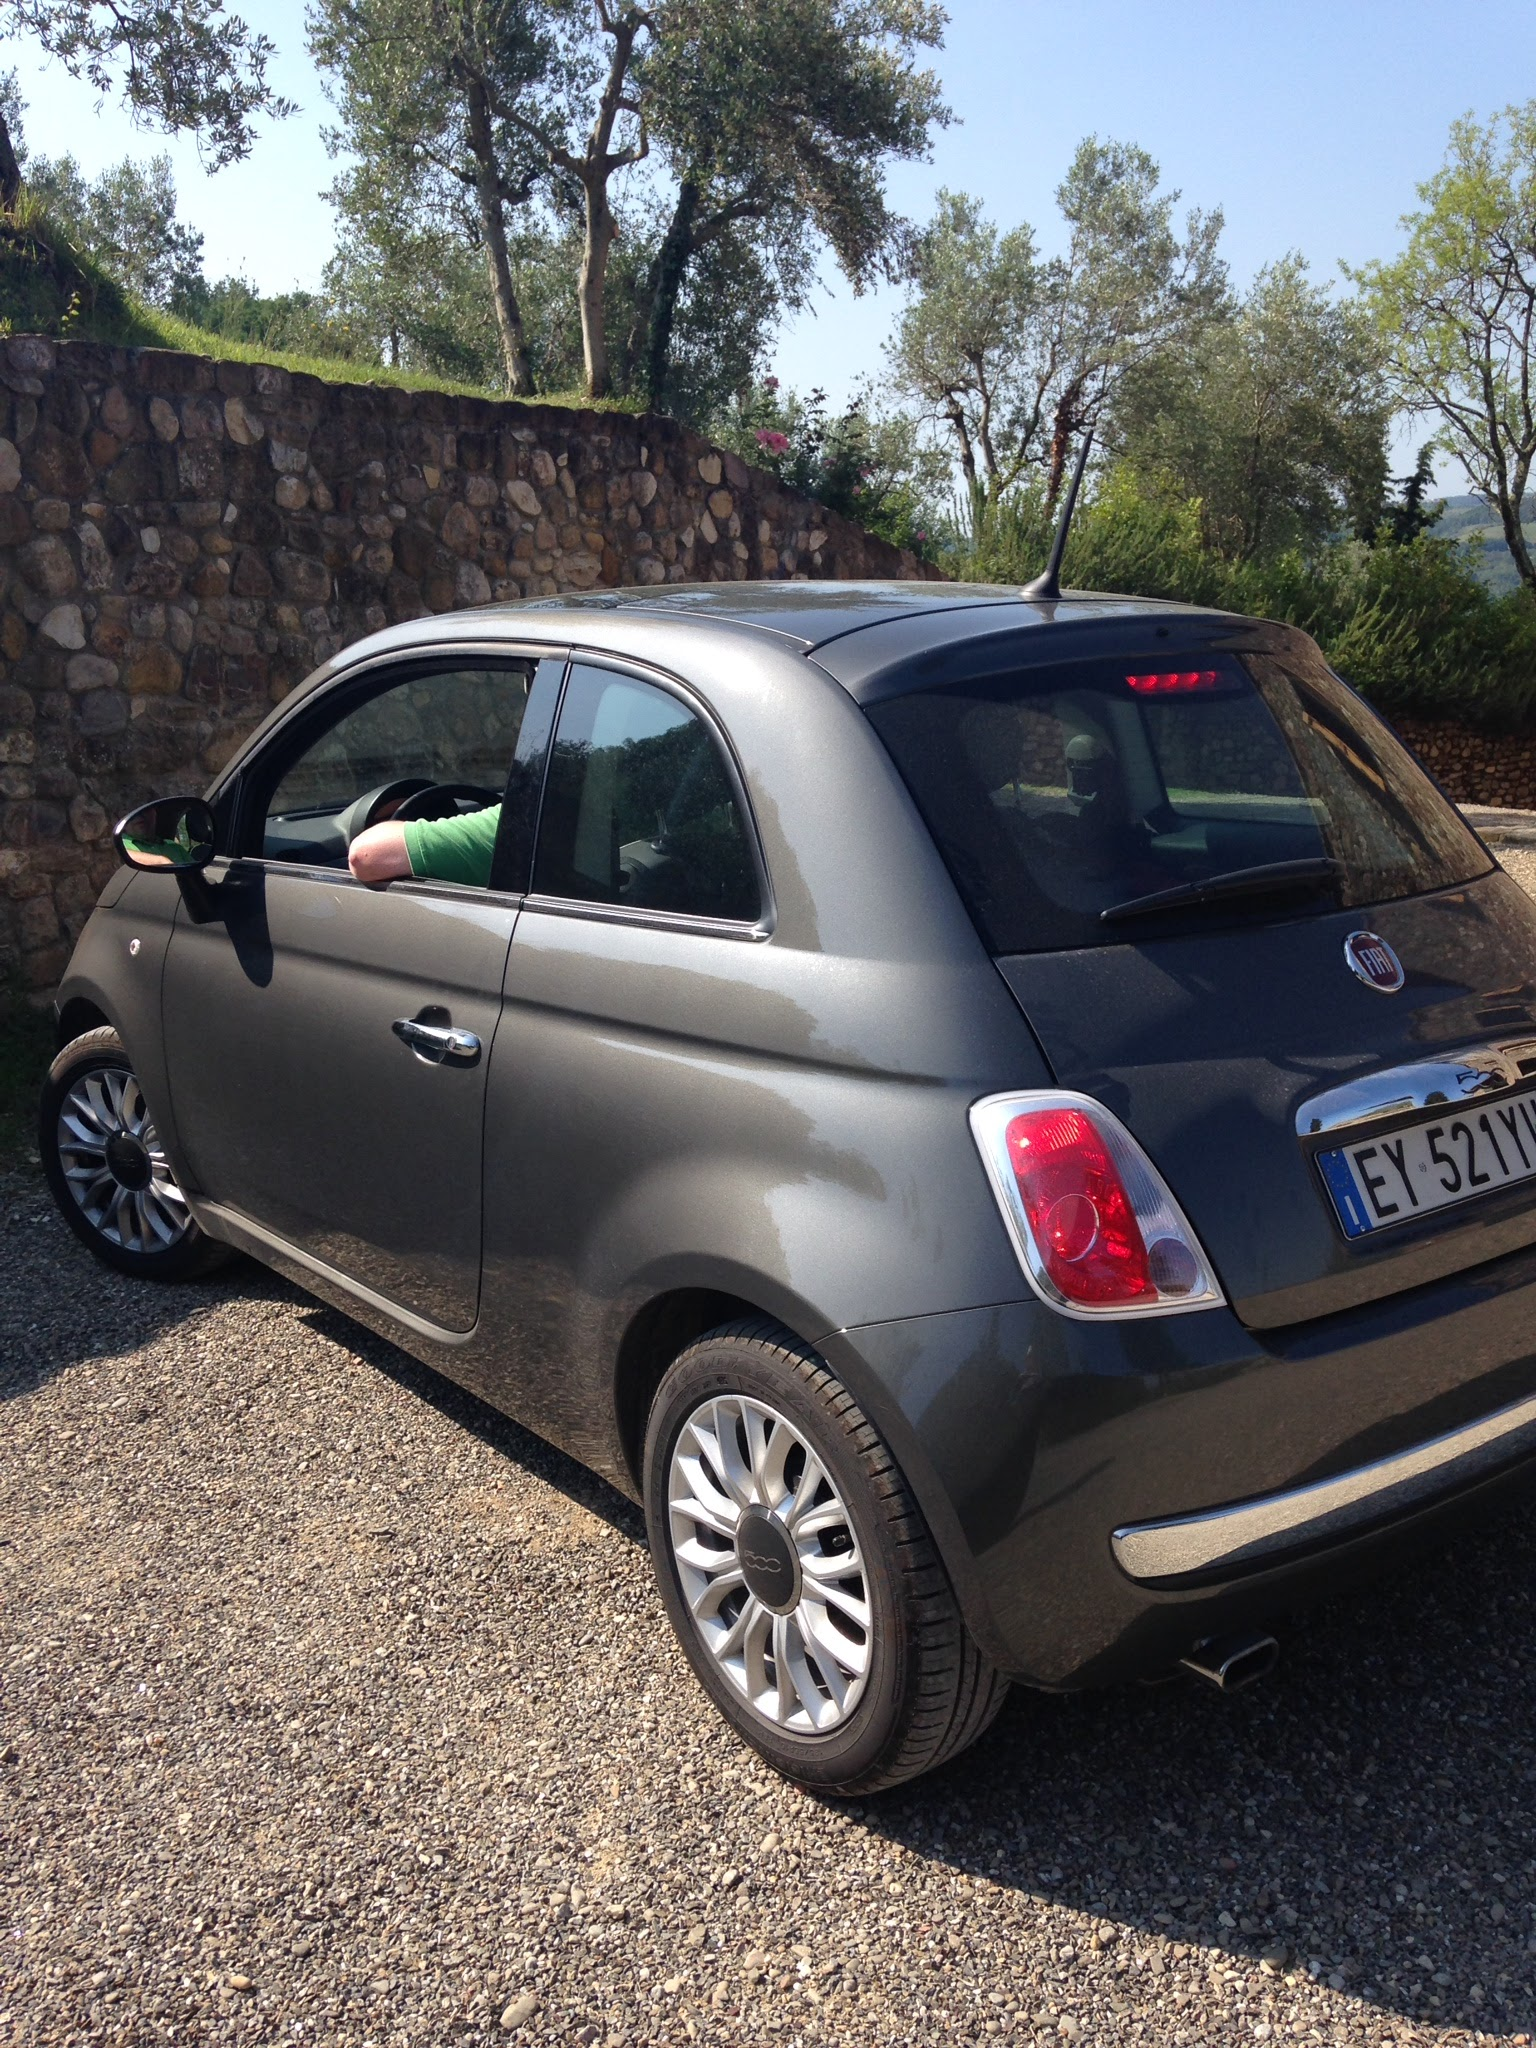 Our Fiat for the week. Meep meep!